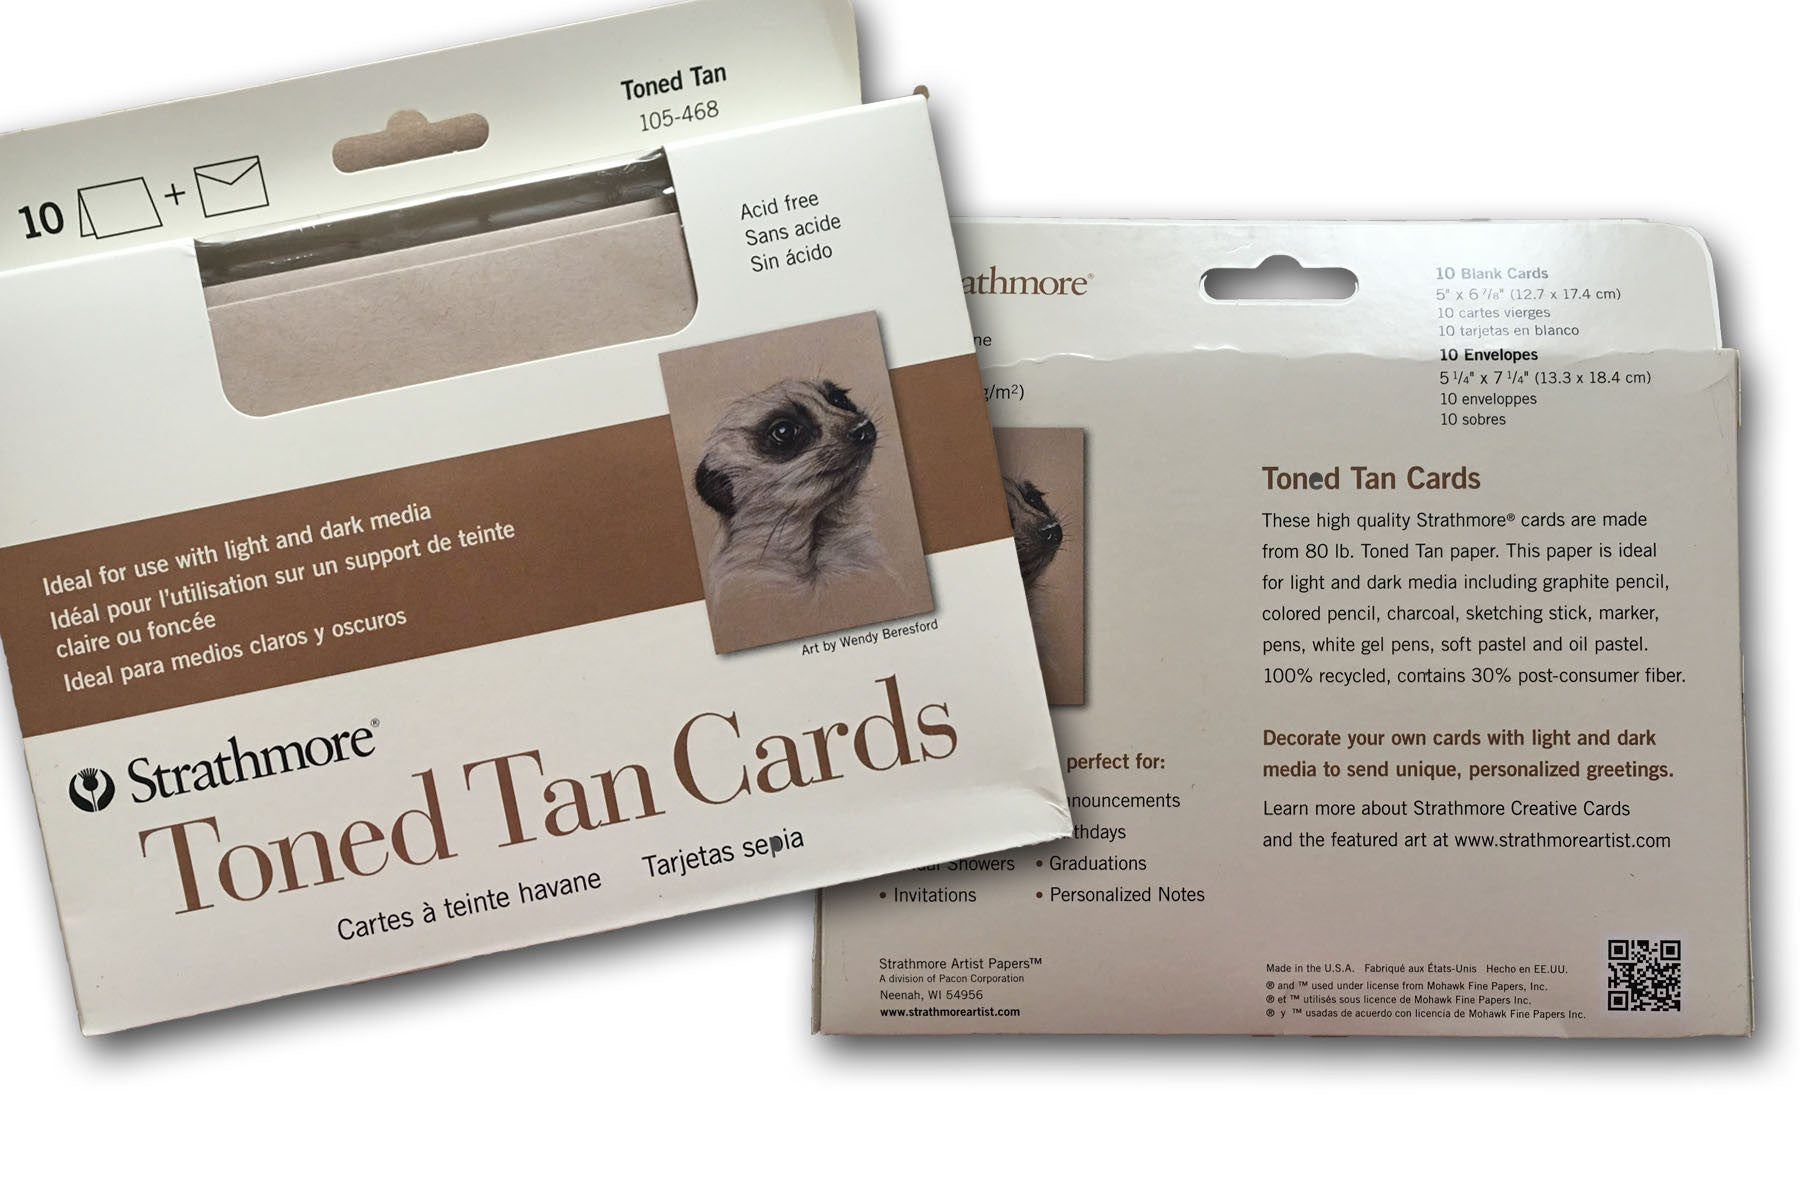 Strathmore tan toned cards and envelopes tan artist cards and envelopes kristyandbryce Choice Image